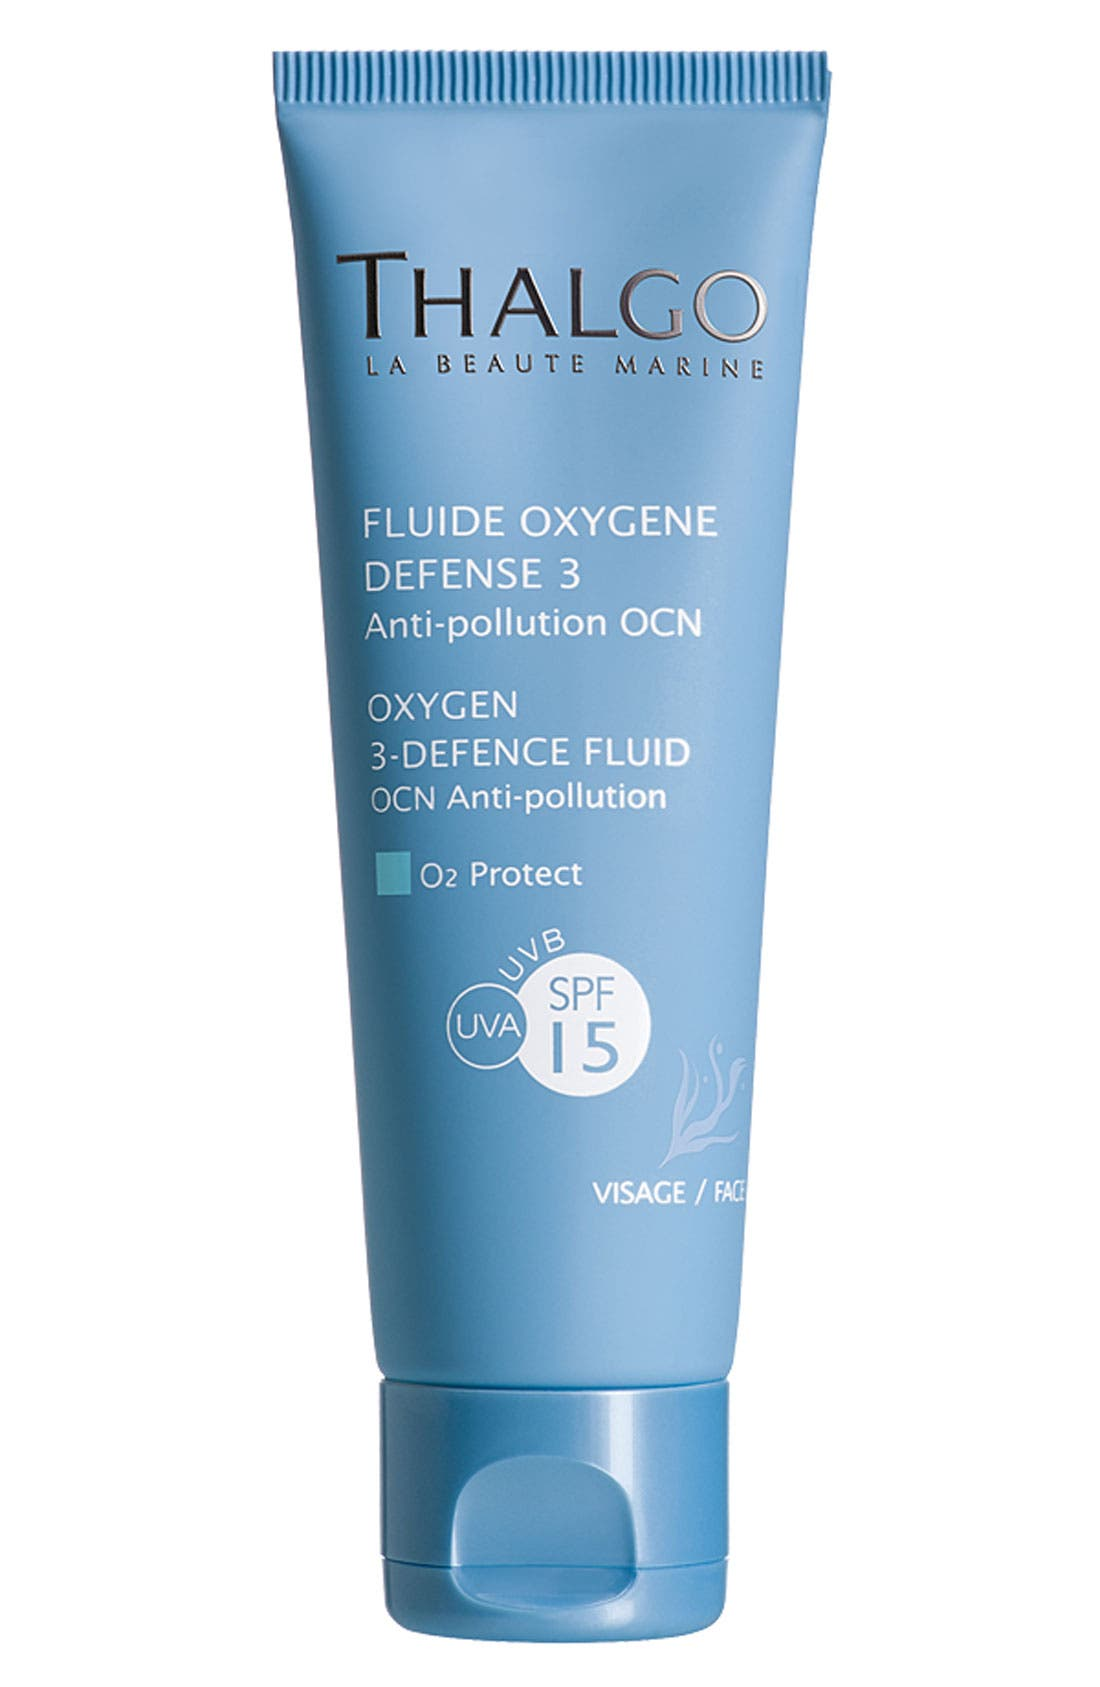 Thalgo 'Oxygen 3-Defence' Fluid SPF 15